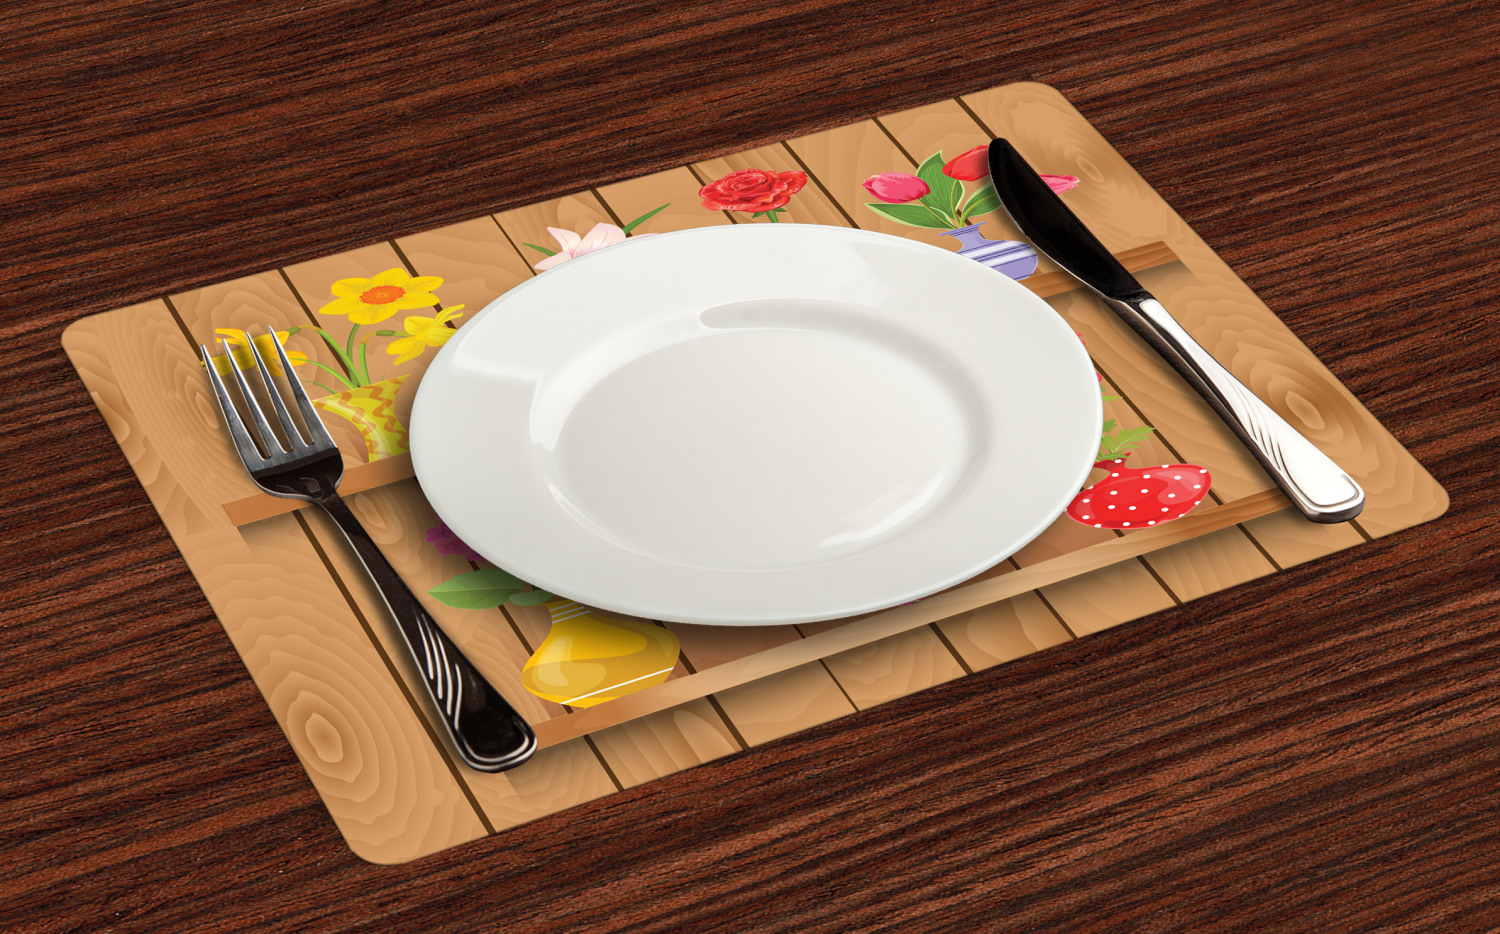 Ambesonne-Flower-Pattern-Placemat-Set-of-4-Fabric-Place-Mats-for-Table-Decor thumbnail 61